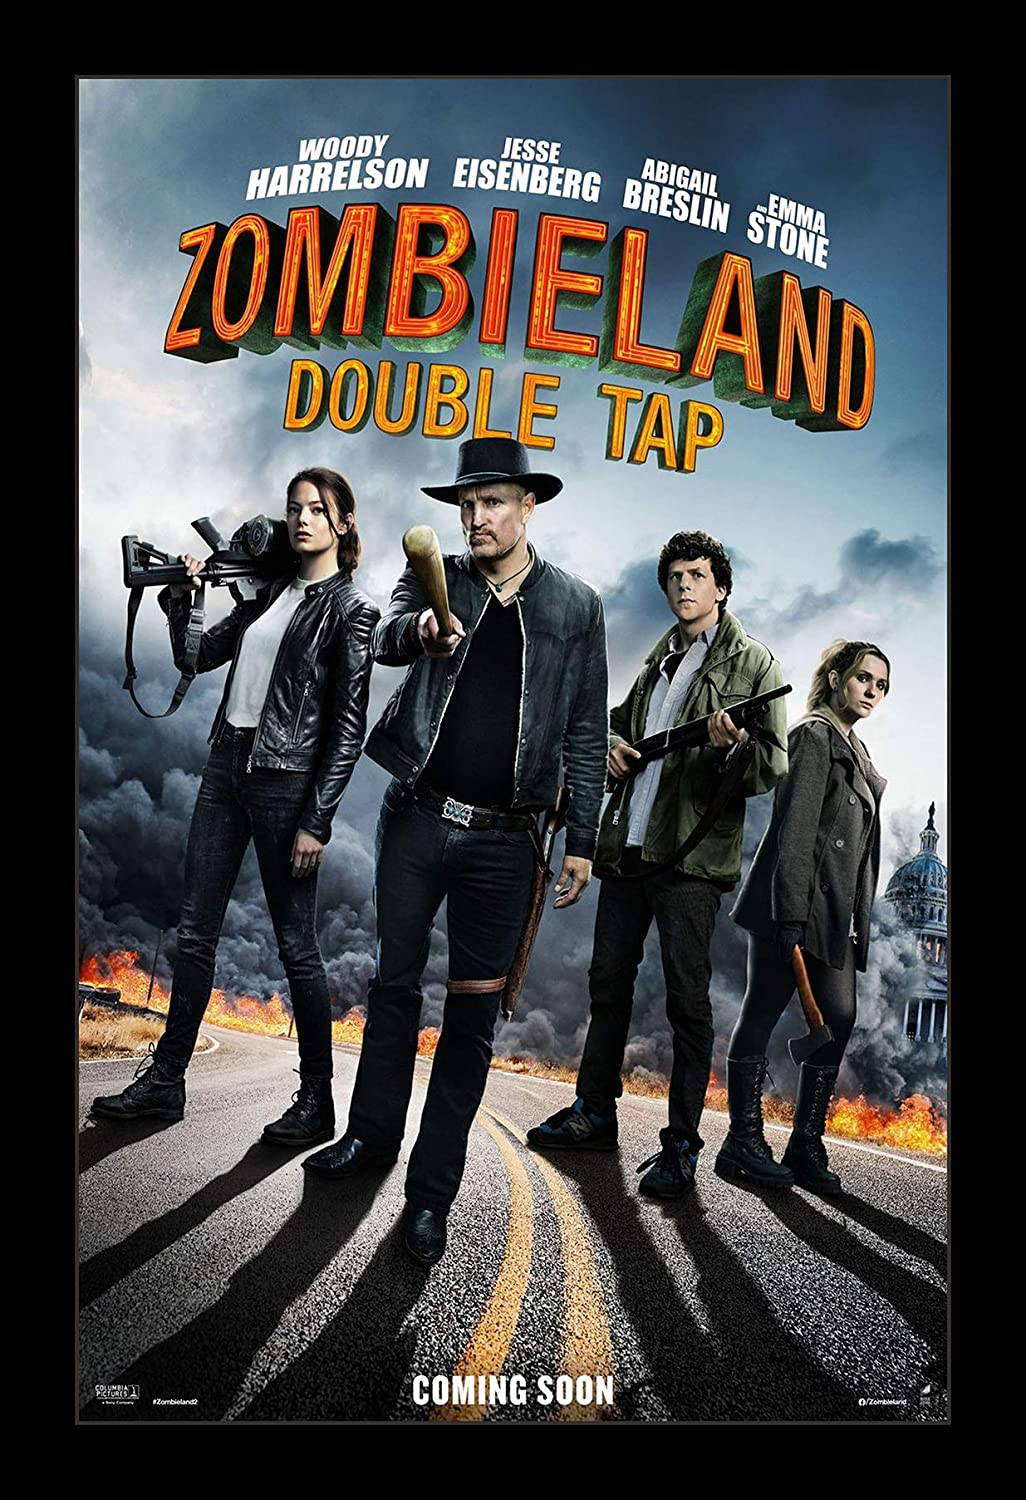 Nippon regular agency Wallspace 11x17 Framed Movie Super-cheap Poster - Tap Double Zombieland